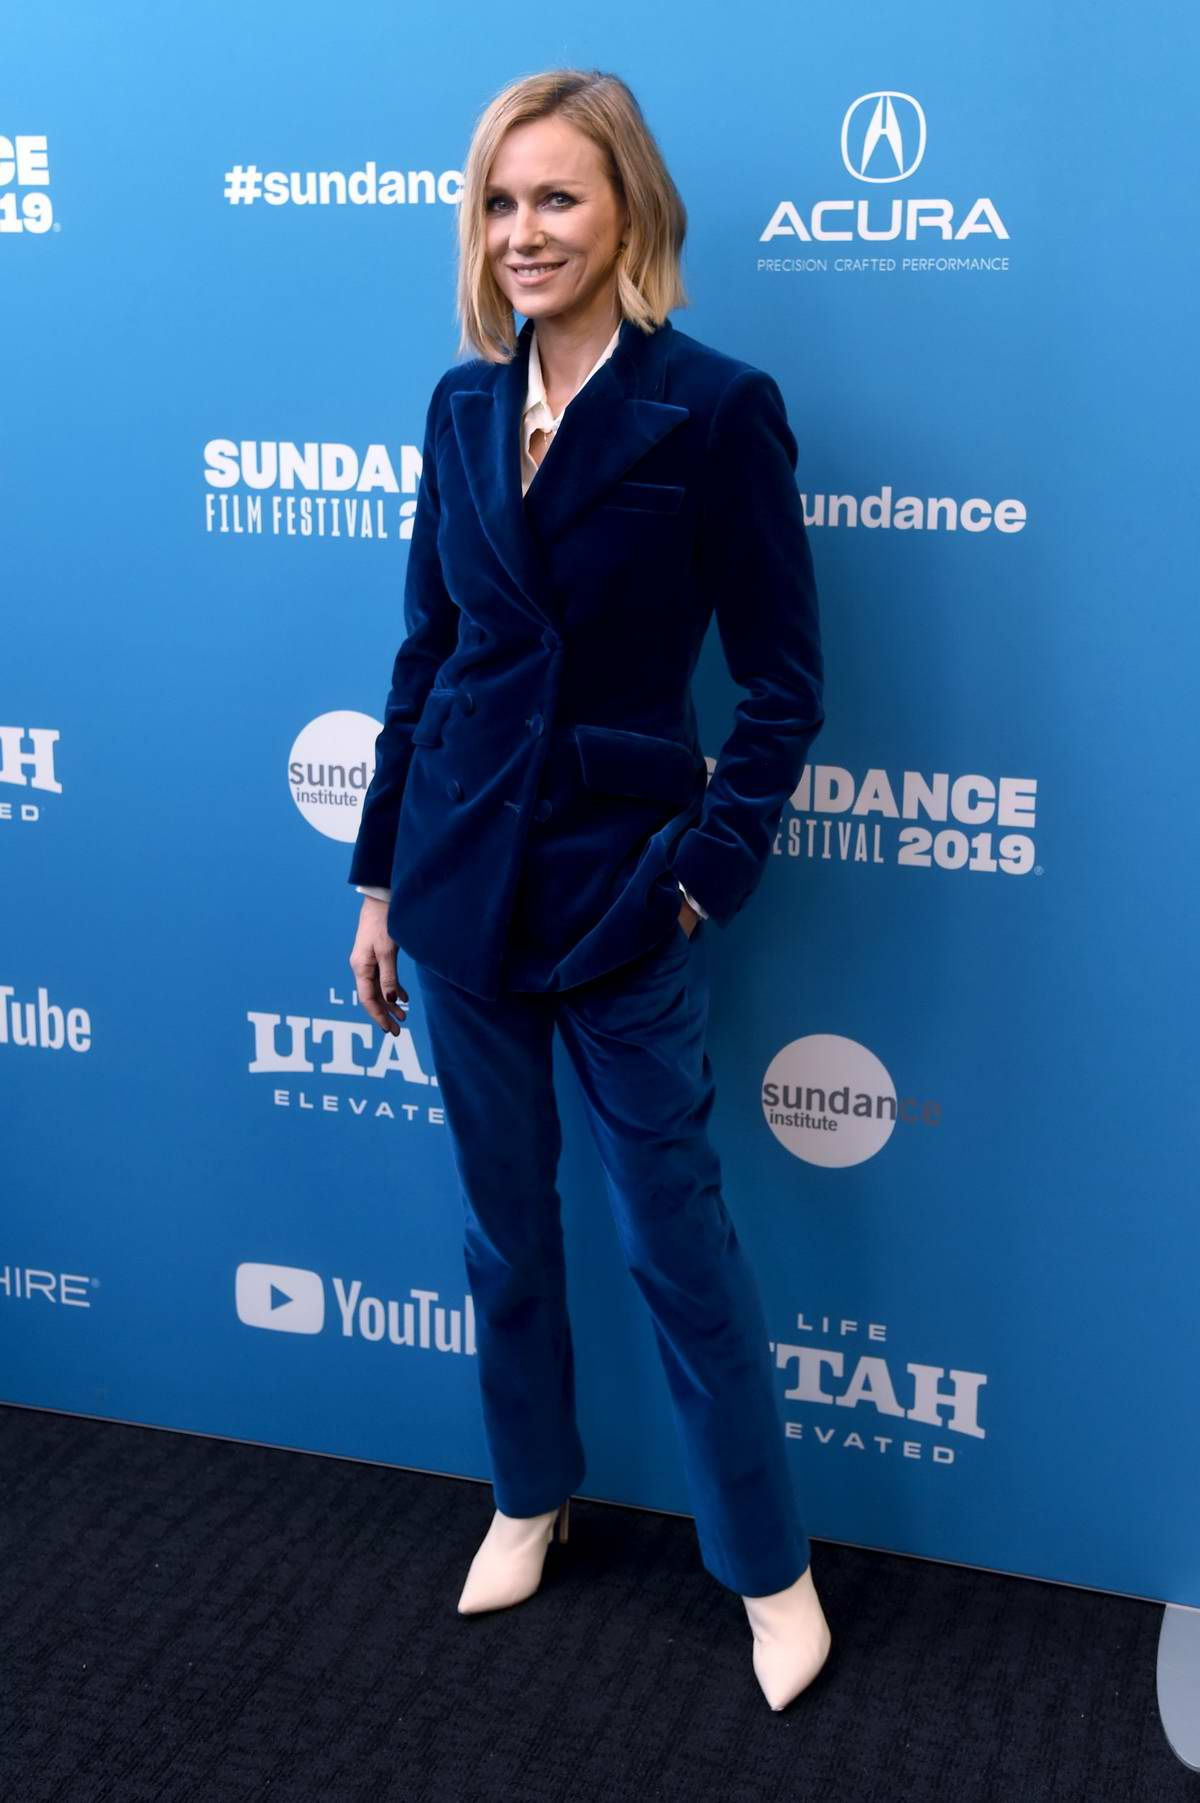 Naomi Watts attends The Wolf Hour Premiere during Sundance Film Festival 2019 in Park City, Utah